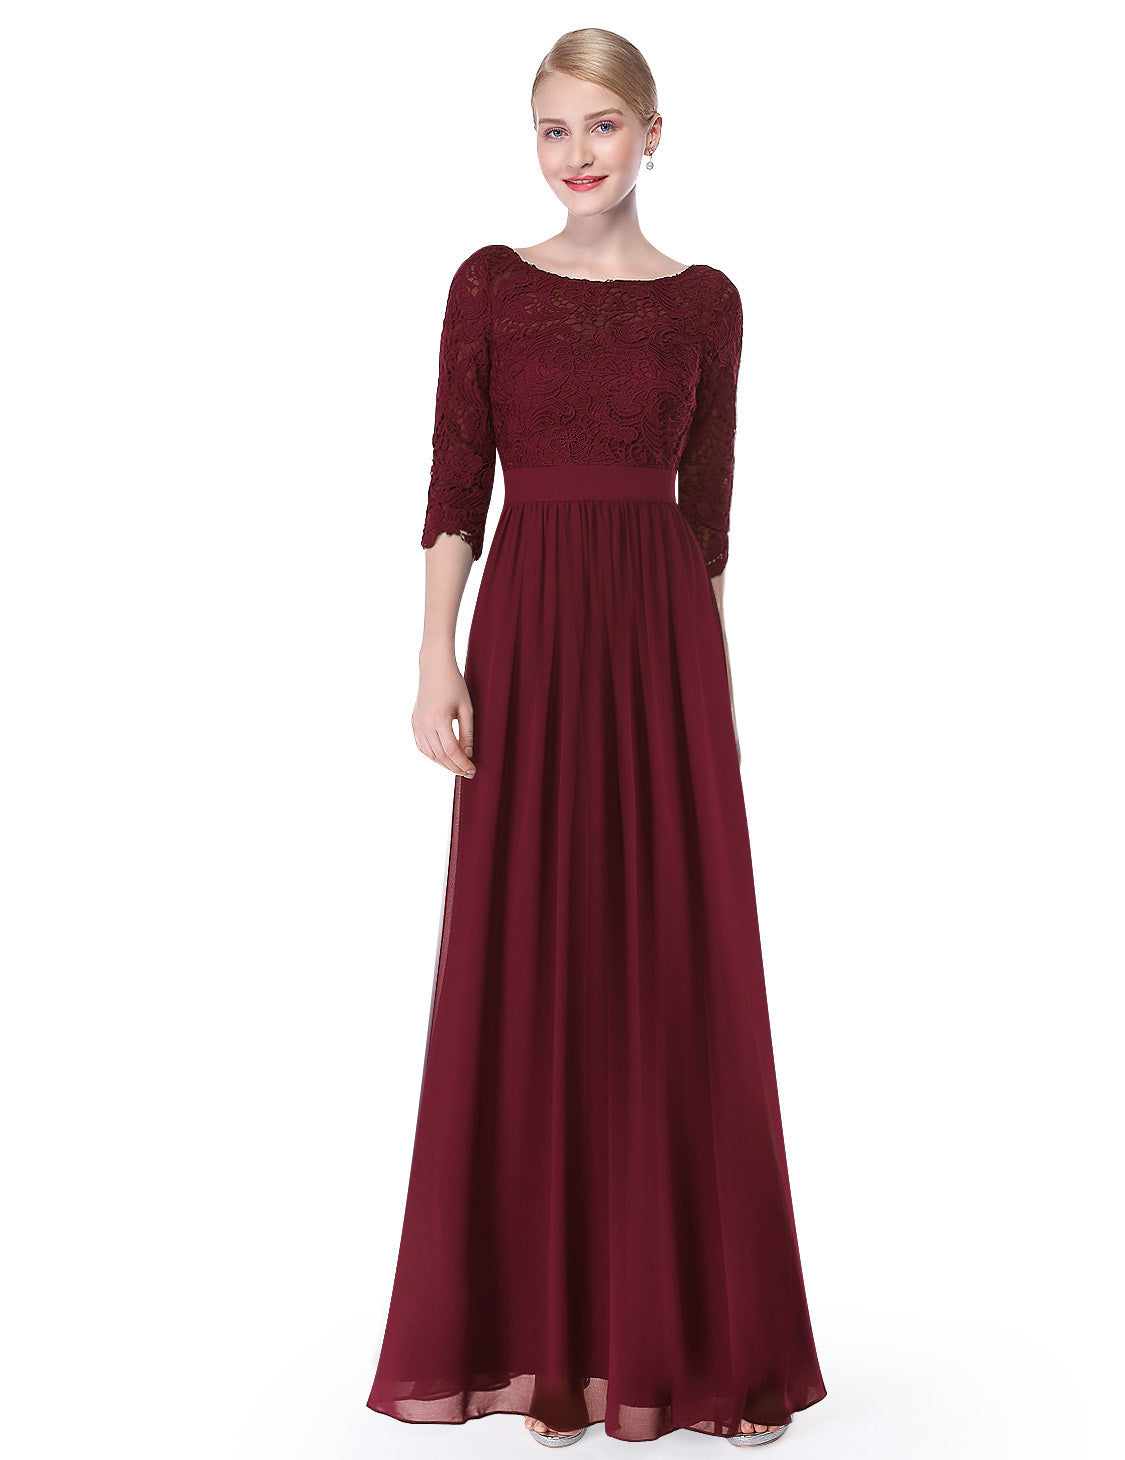 Obeige Elegant Burgundy 3/4 Sleeve Lace Long Evening Dress - O'beige